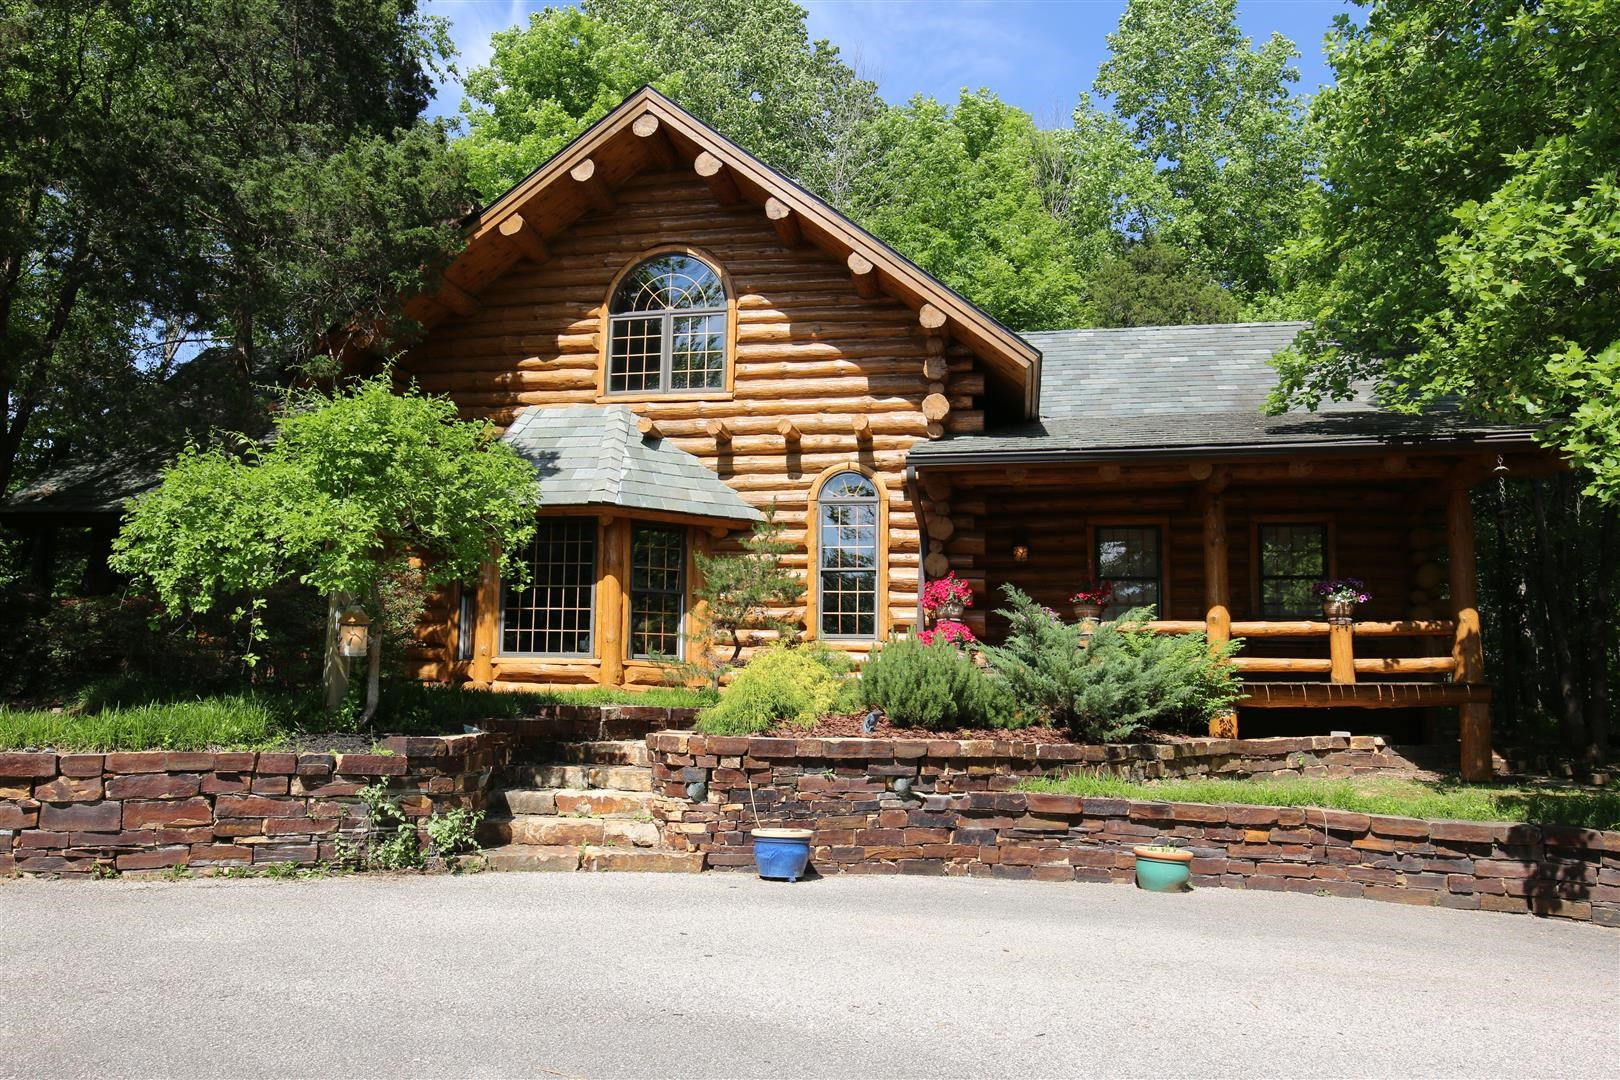 Sold - Bloomington, IN log home for sale, Indiana resort property